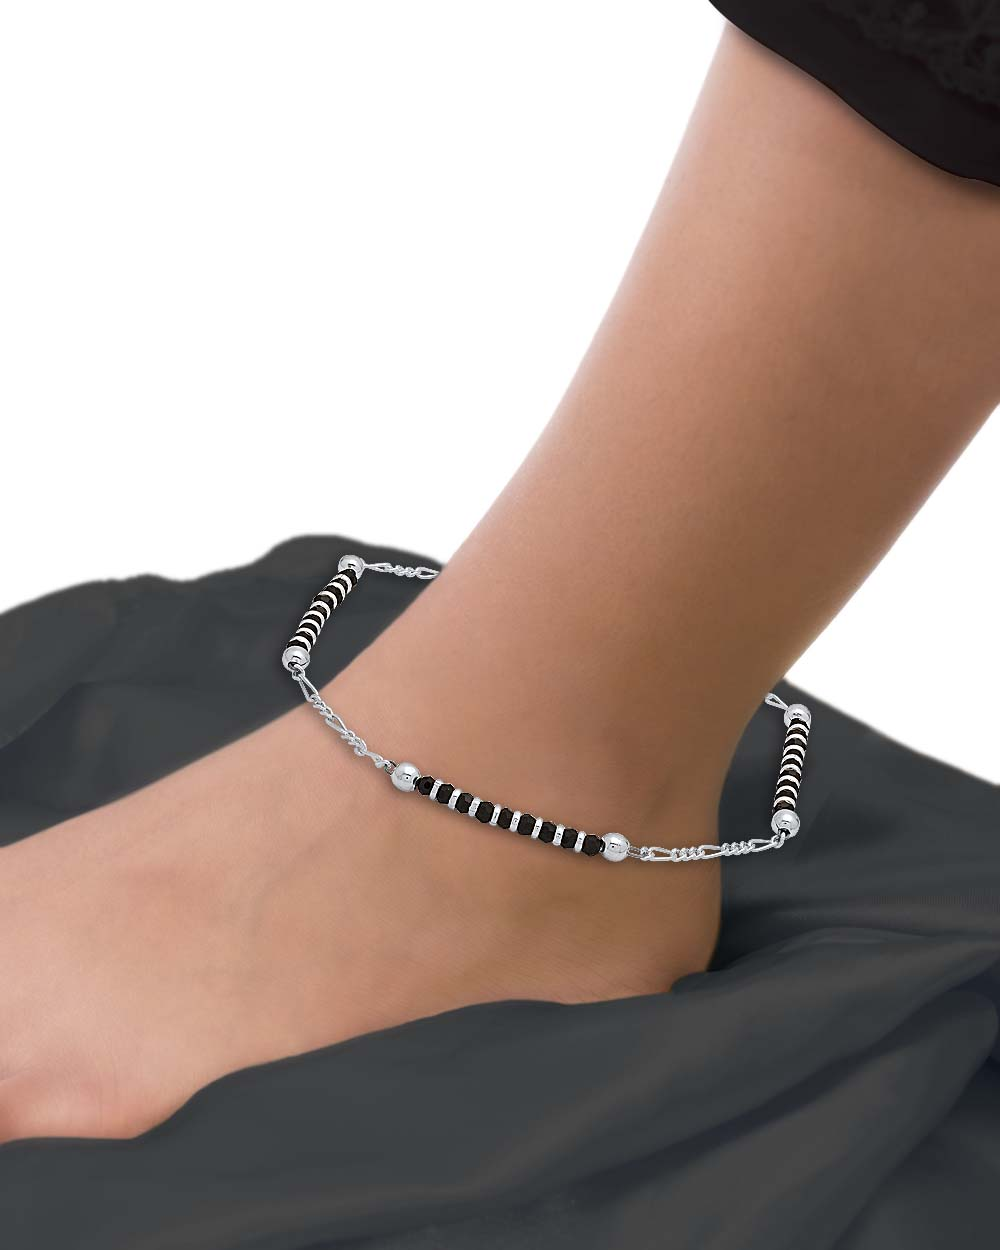 Buy 925 Sterling Silver Anklets Studded with Black Beads Online ...